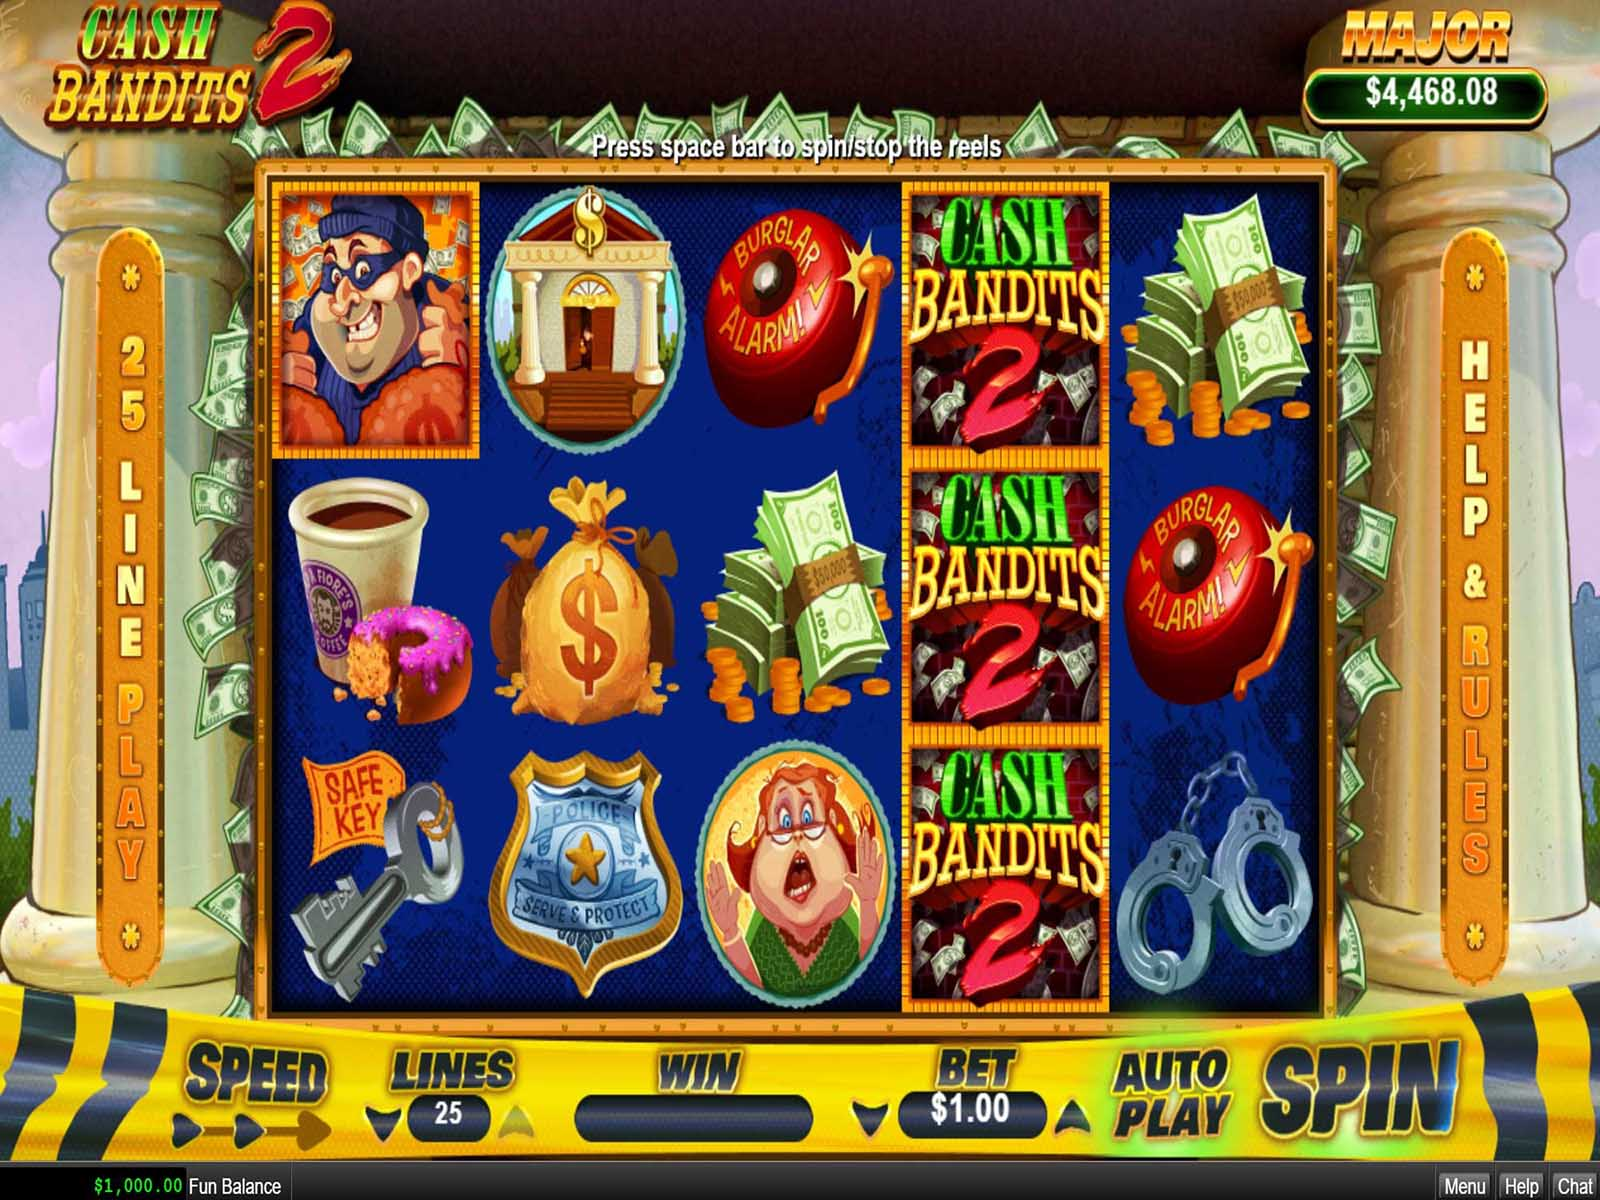 If you're looking for online slots you can play for real money, we got you covered. Here's the best ones to try out.